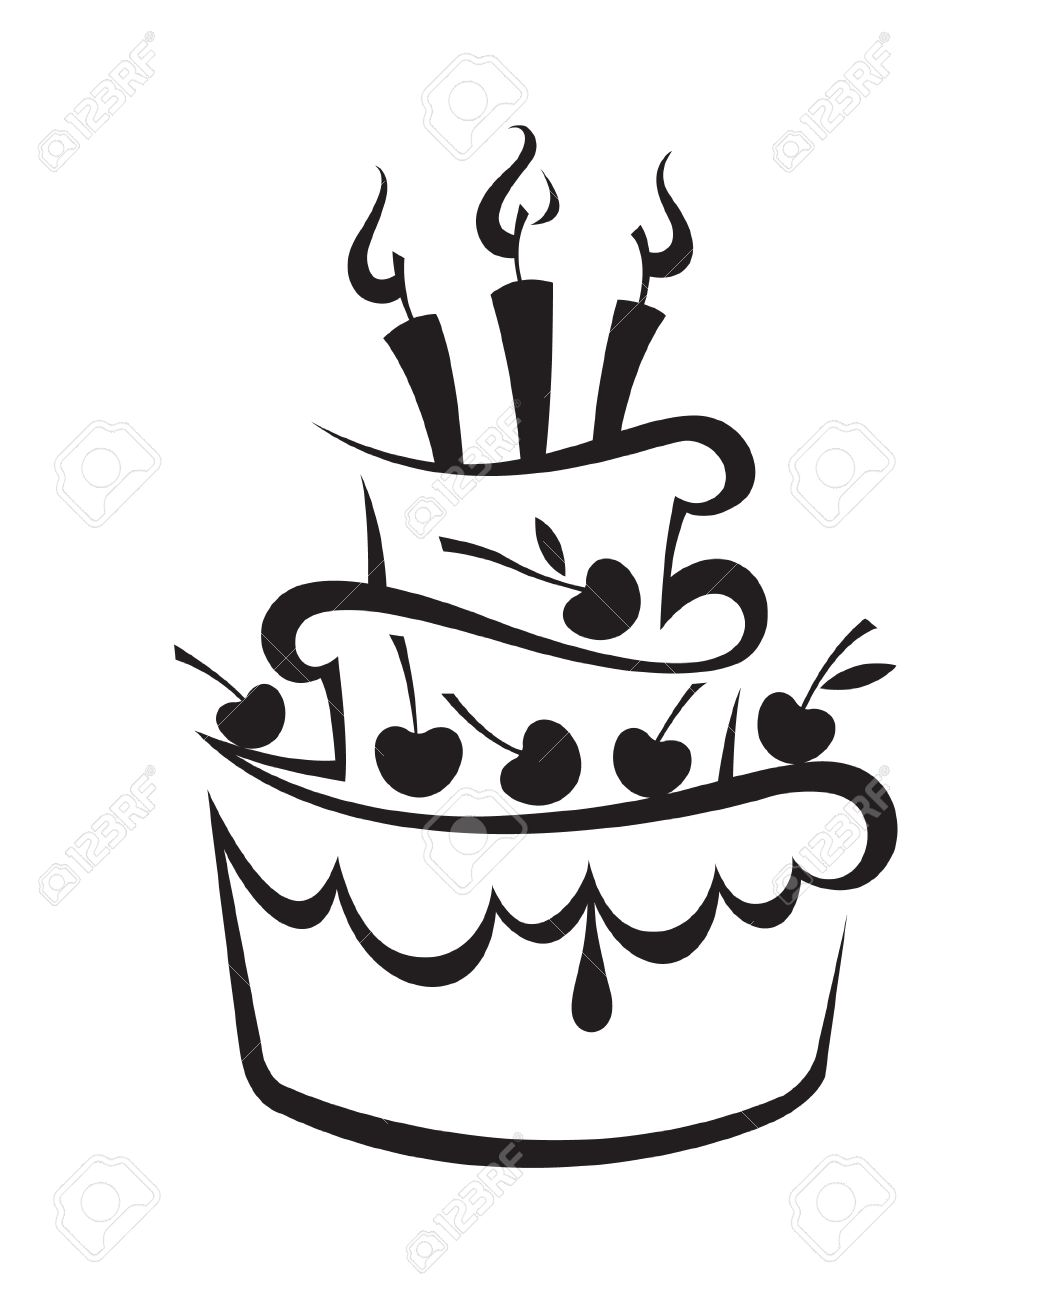 1063x1300 Birthday Cake Clipart Black And White Free Choice Image